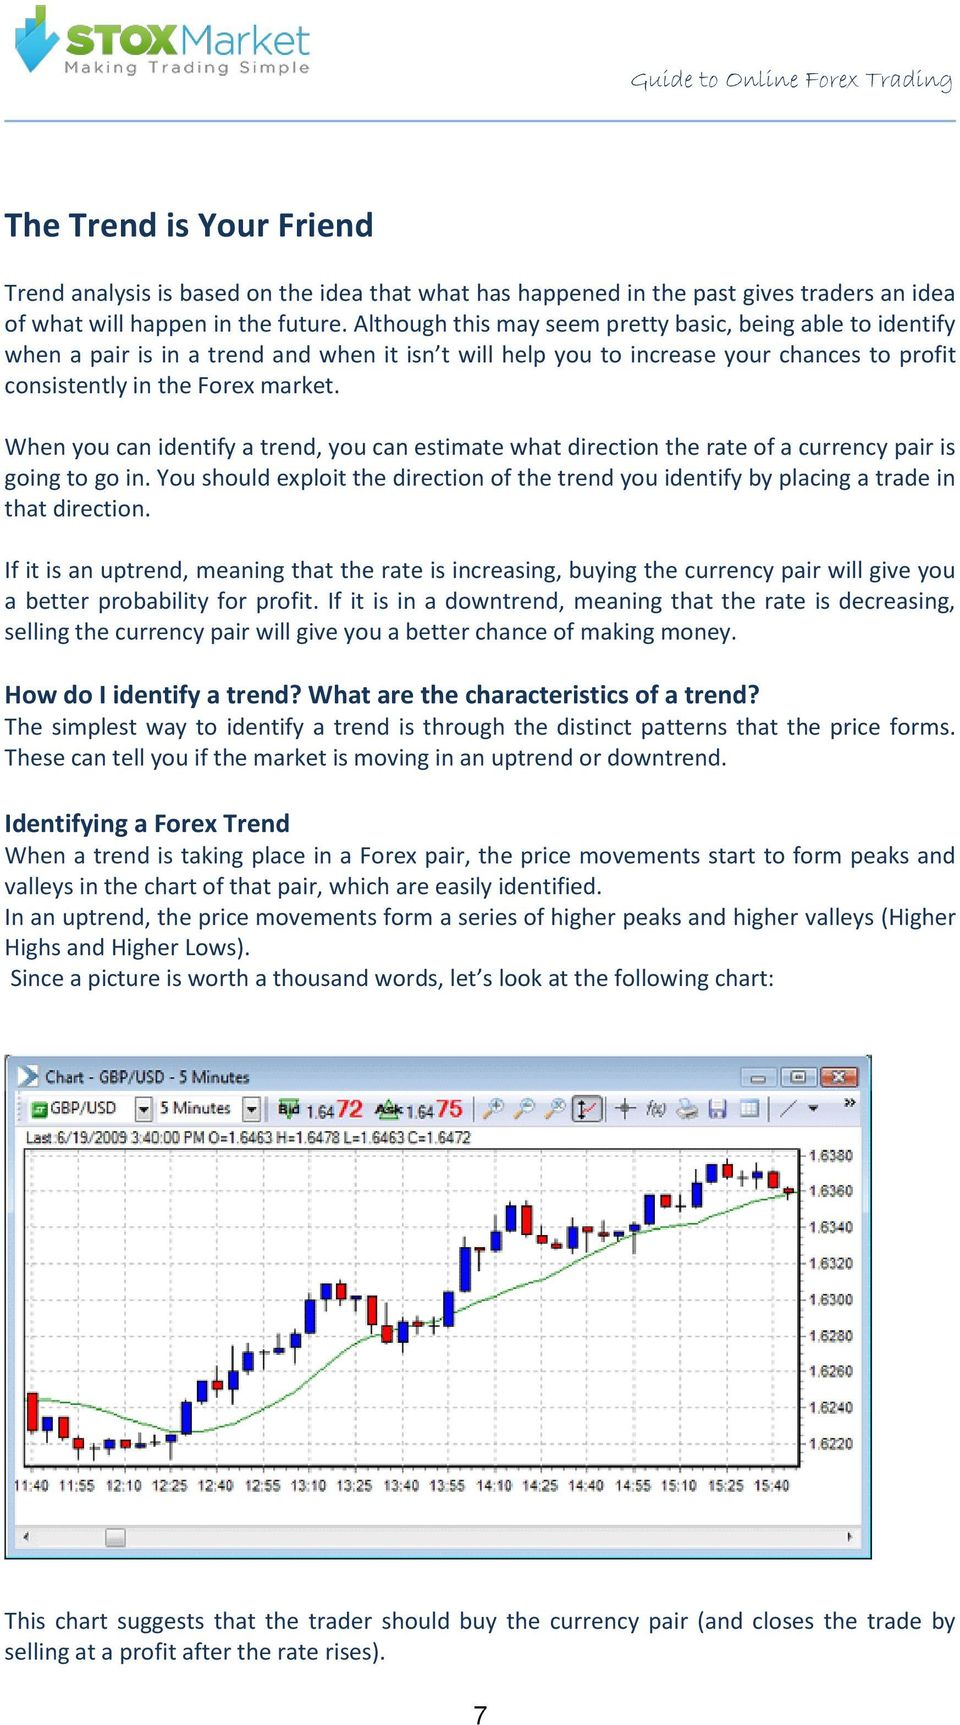 When you can identify a trend, you can estimate what direction the rate of a currency pair is going to go in.